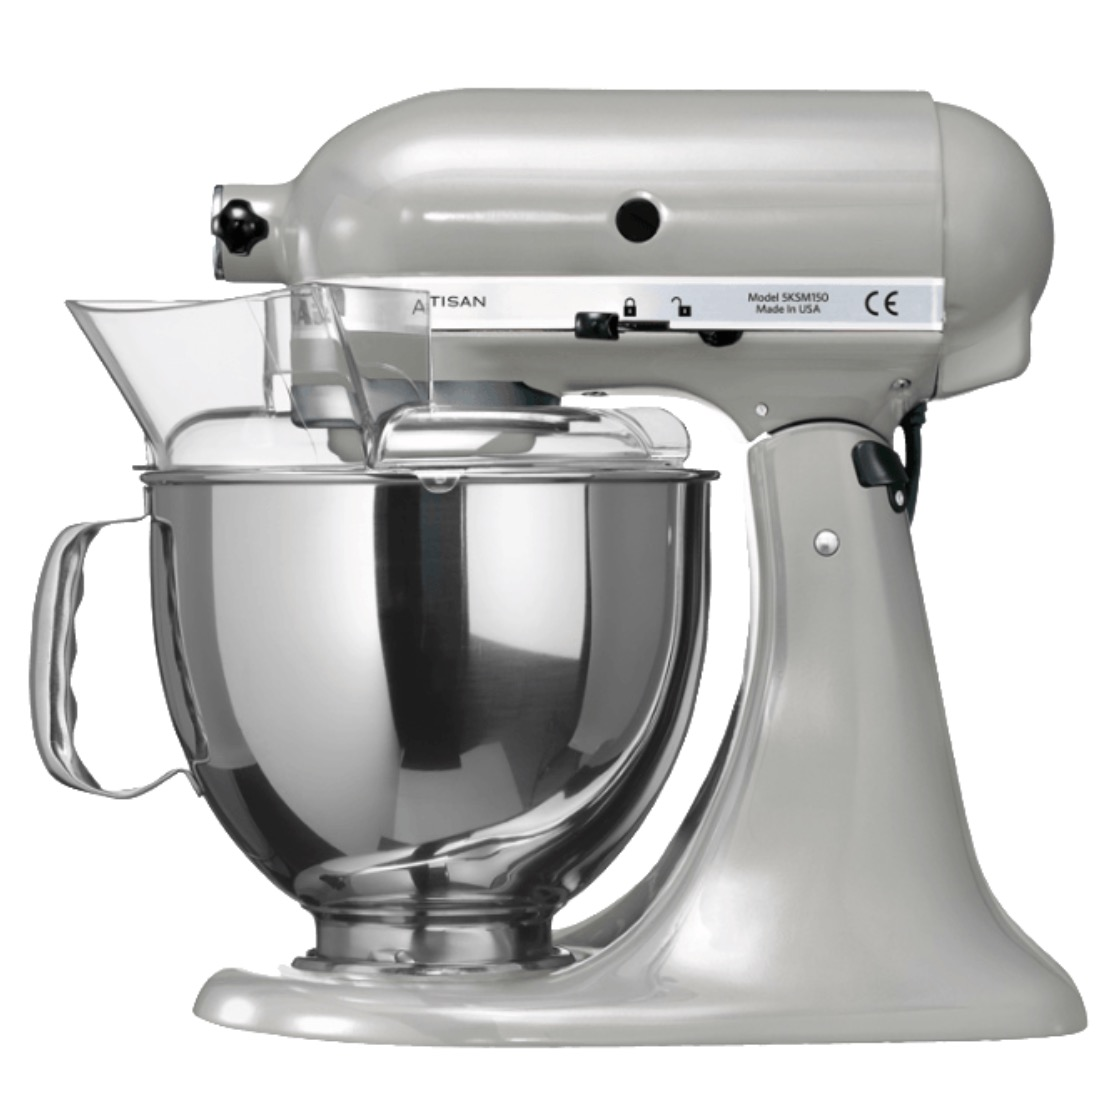 kitchenaid artisan k chenmaschine 5ksm150pse mytopdeals. Black Bedroom Furniture Sets. Home Design Ideas